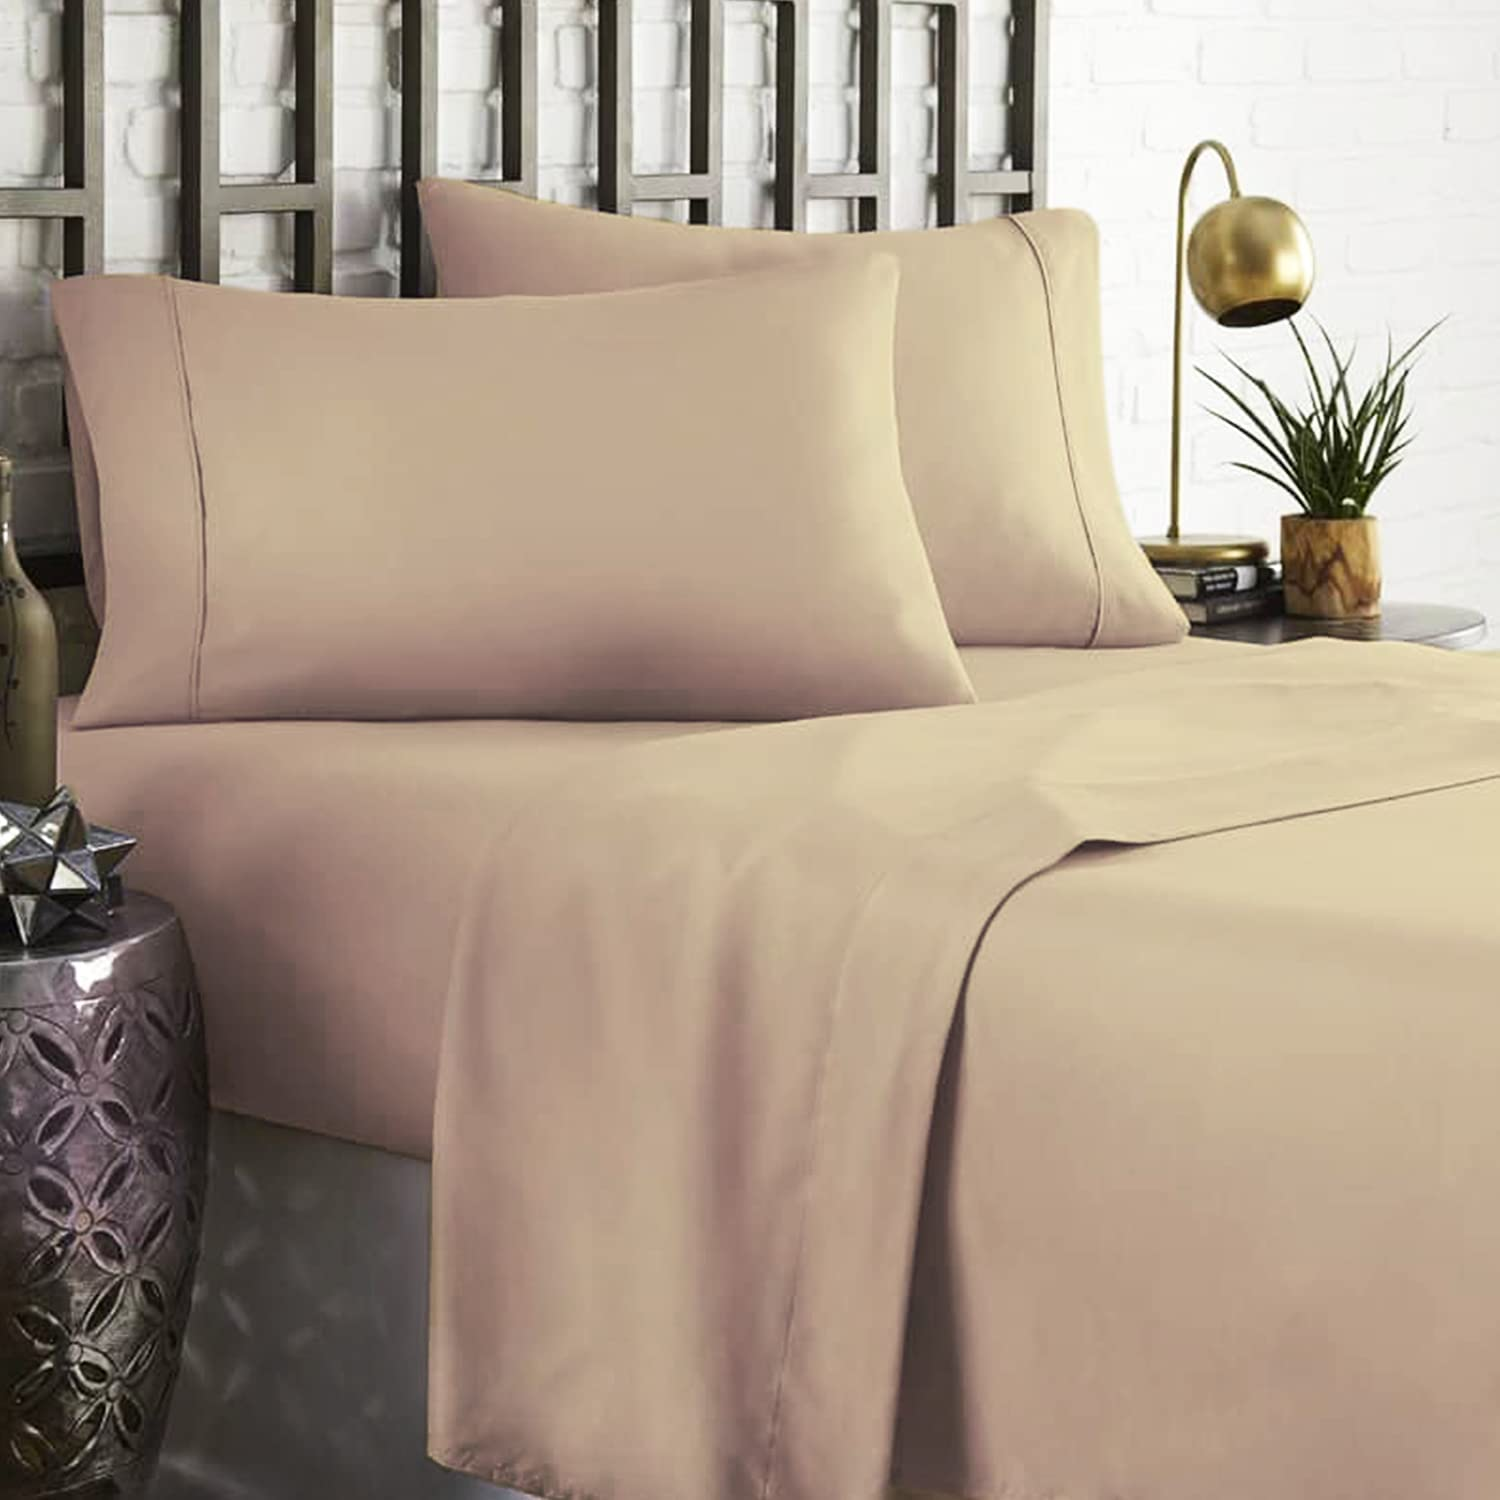 100% Egyptian Cotton 800 Thread Count Sheet Piece Sheets 4 King 70% OFF Quality inspection Outlet